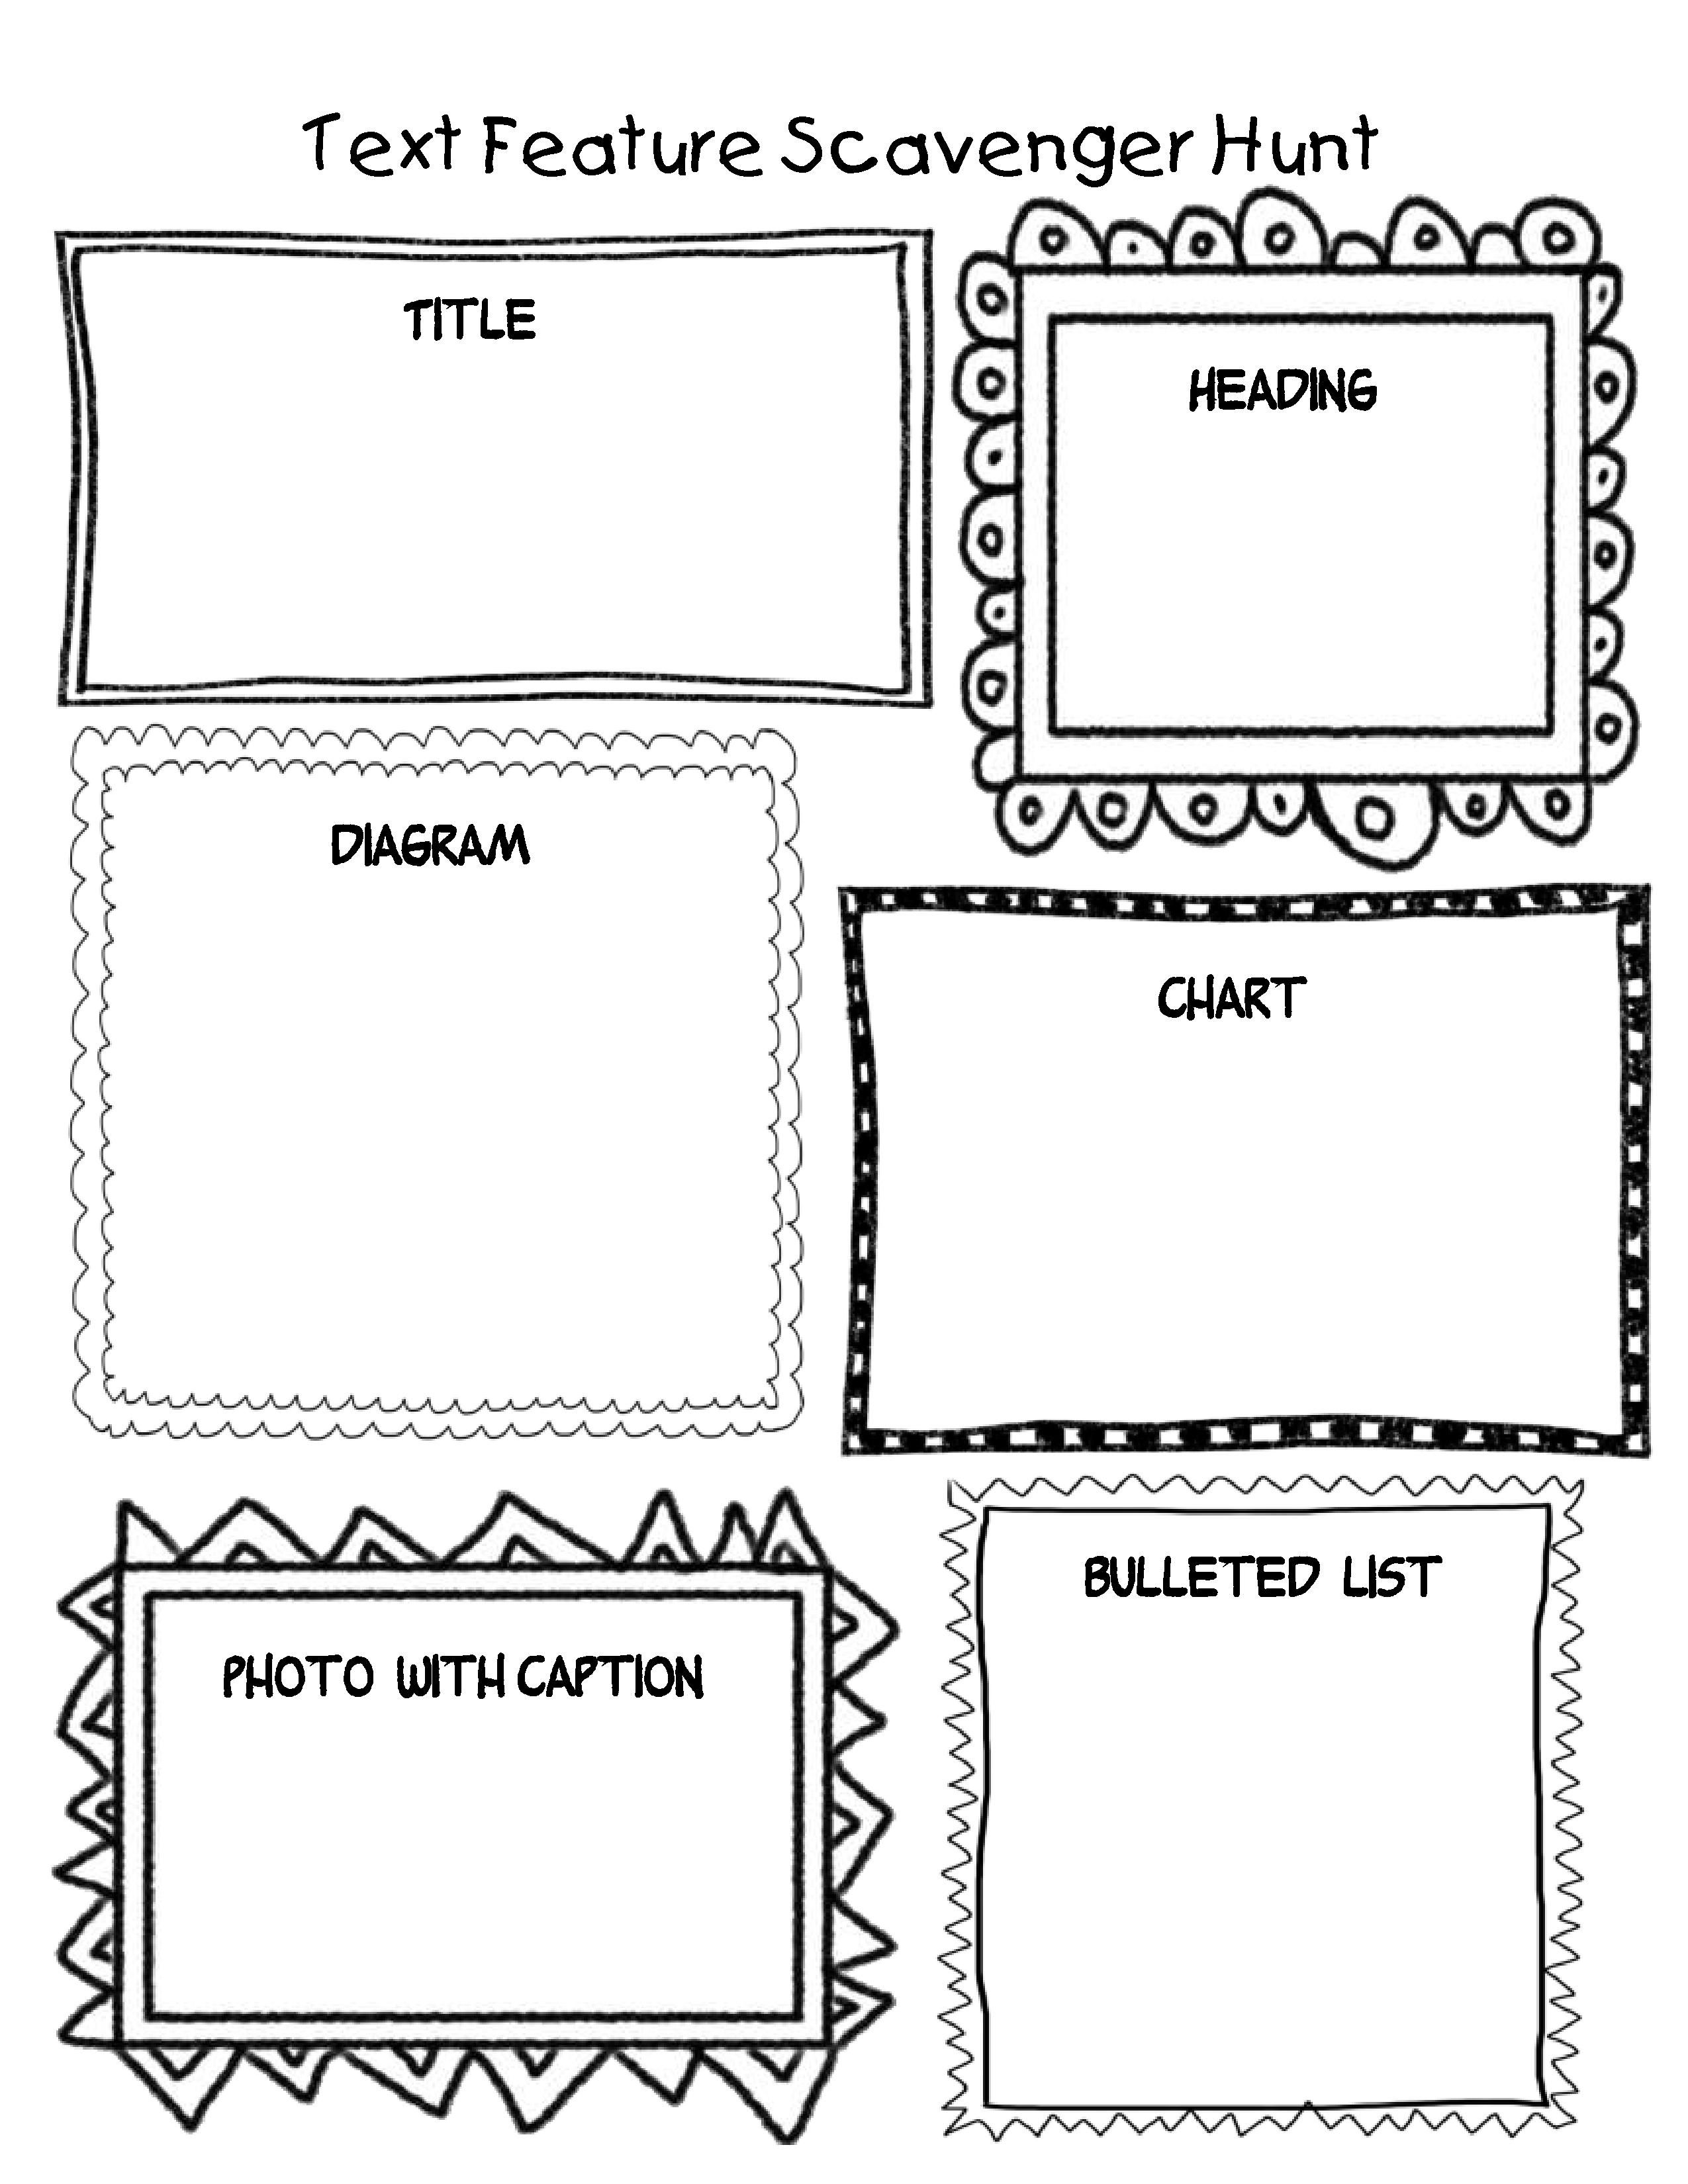 Create One Of These Students Could Then Create One Of Their Own Text Feature Scavenger Hunt Text Features Worksheet Text Features Text Features Activities [ 3300 x 2550 Pixel ]